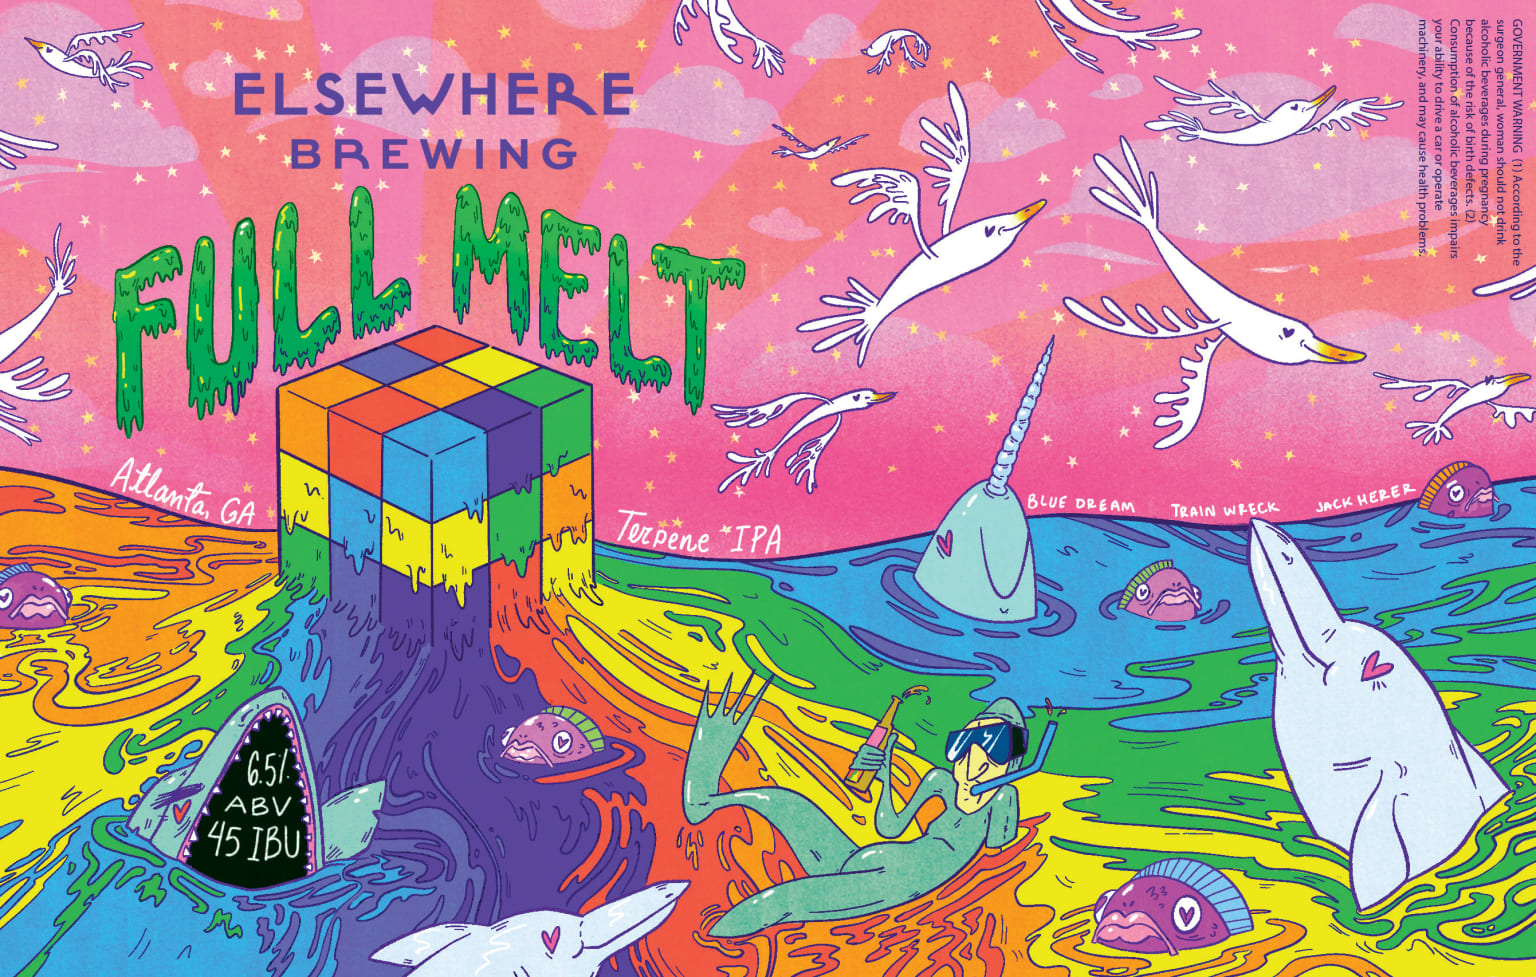 Elsewhere Brewing 'Full Melt' IPA beer label